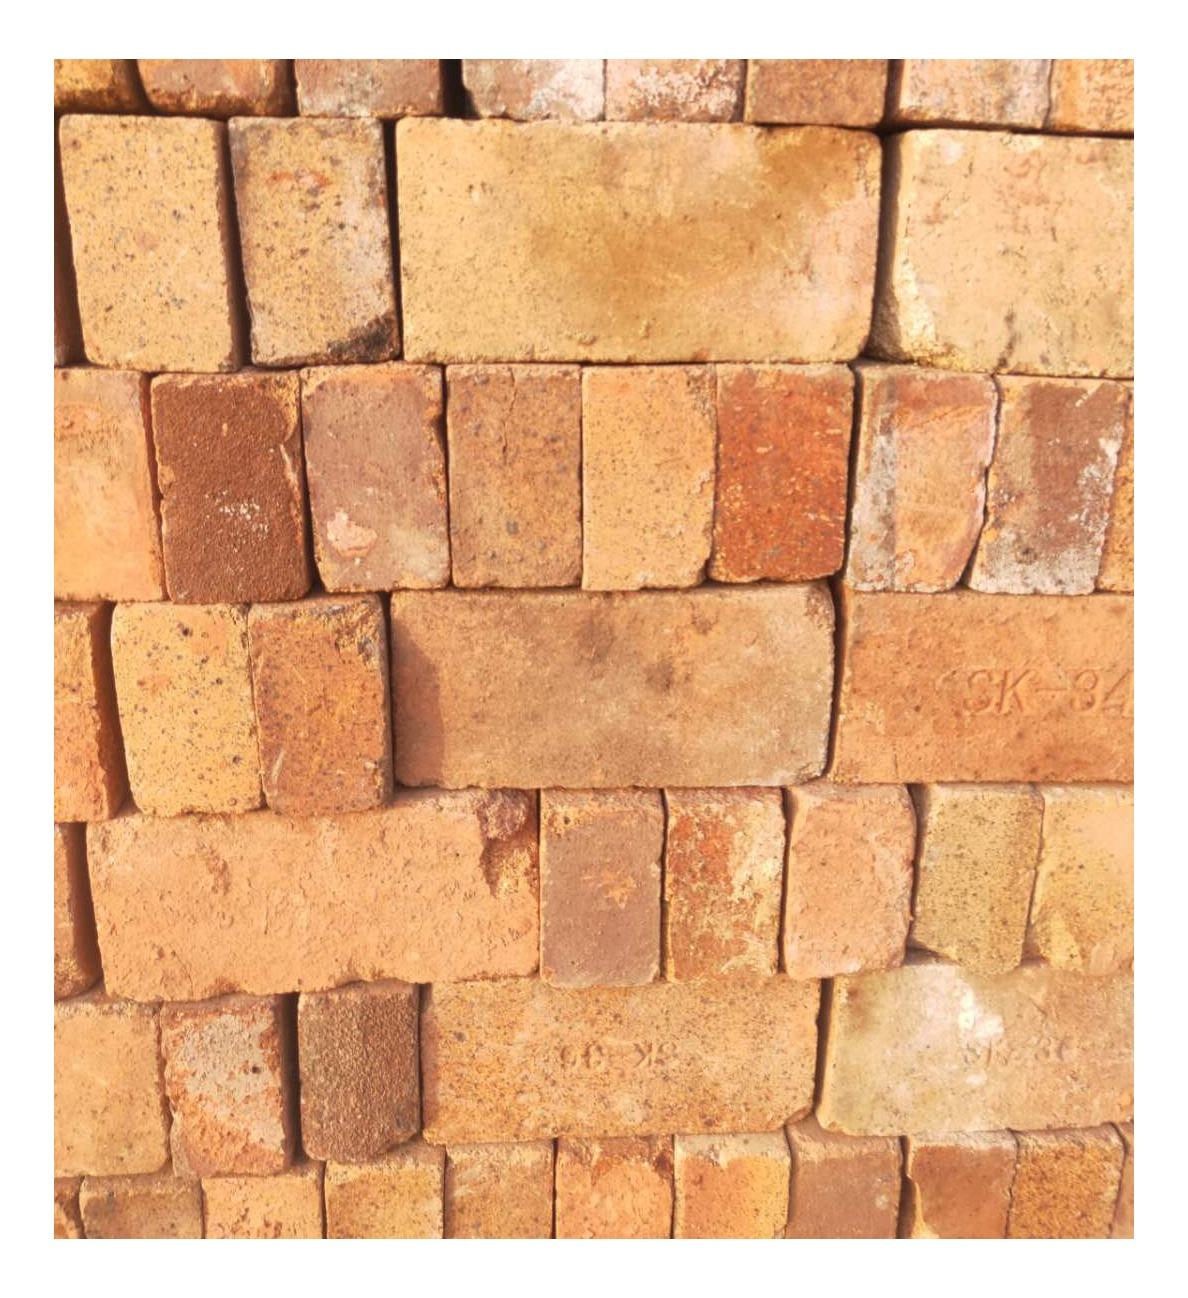 Cheap Reclaimed Old Brick Antique Red Fire Clay Bricks For Construction Walls